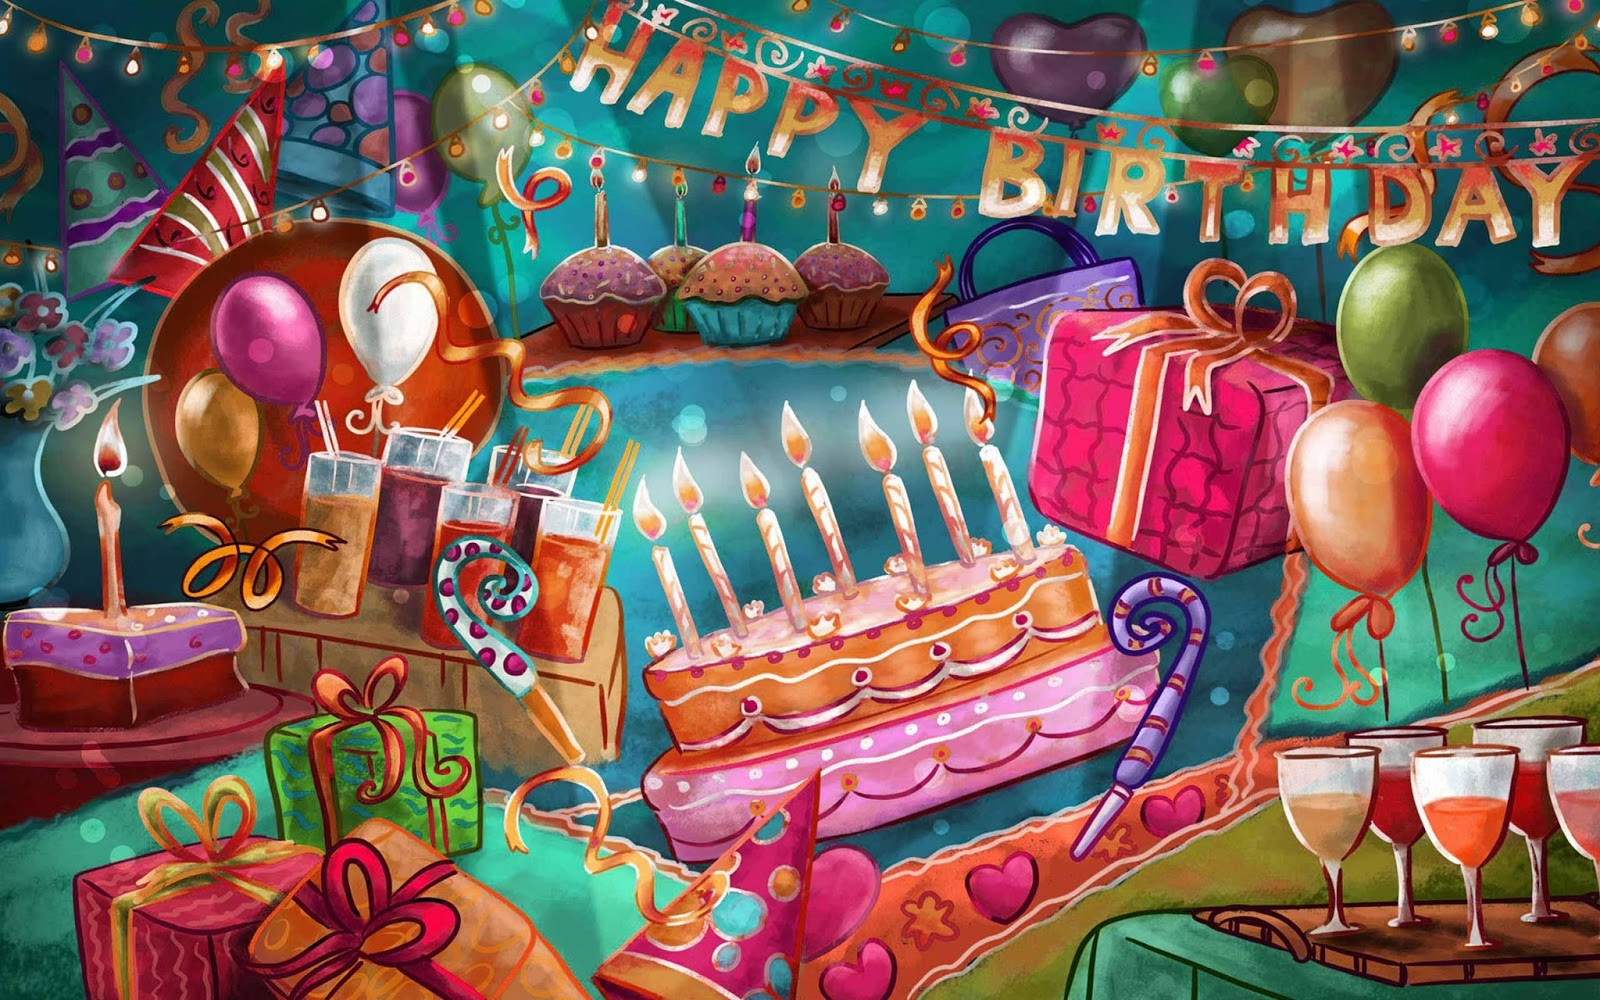 happy birthday wallpapers hd - photo #31